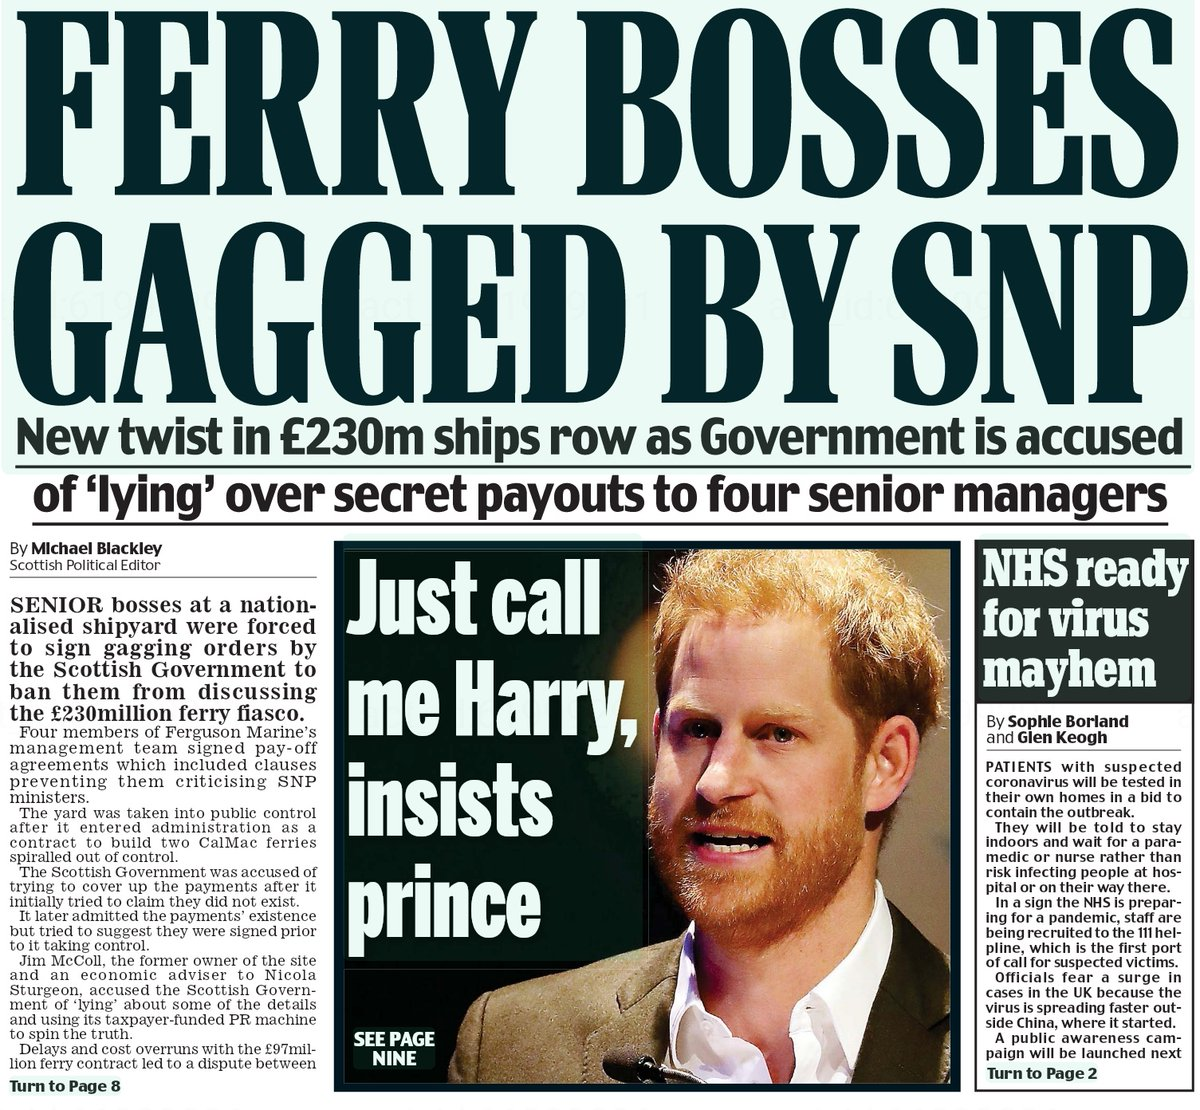 Four managers were paid off with generous deals by the SNP in return for silence.  Just what are they hiding from the public?